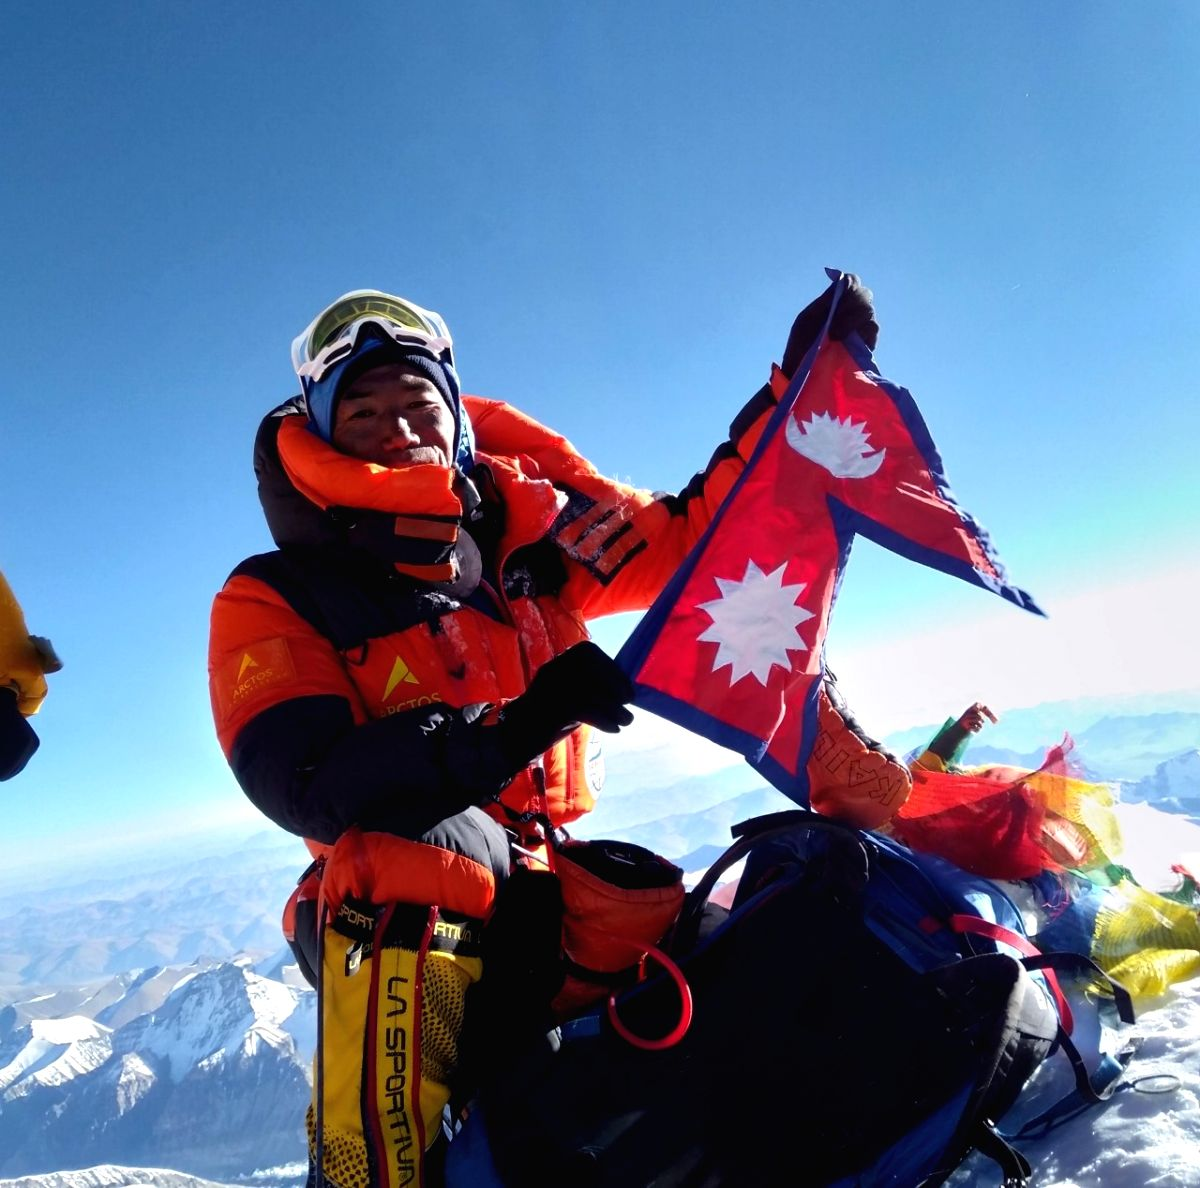 Nepal's Kami Rita Sherpa ascents Mt Everest for record 25th time.